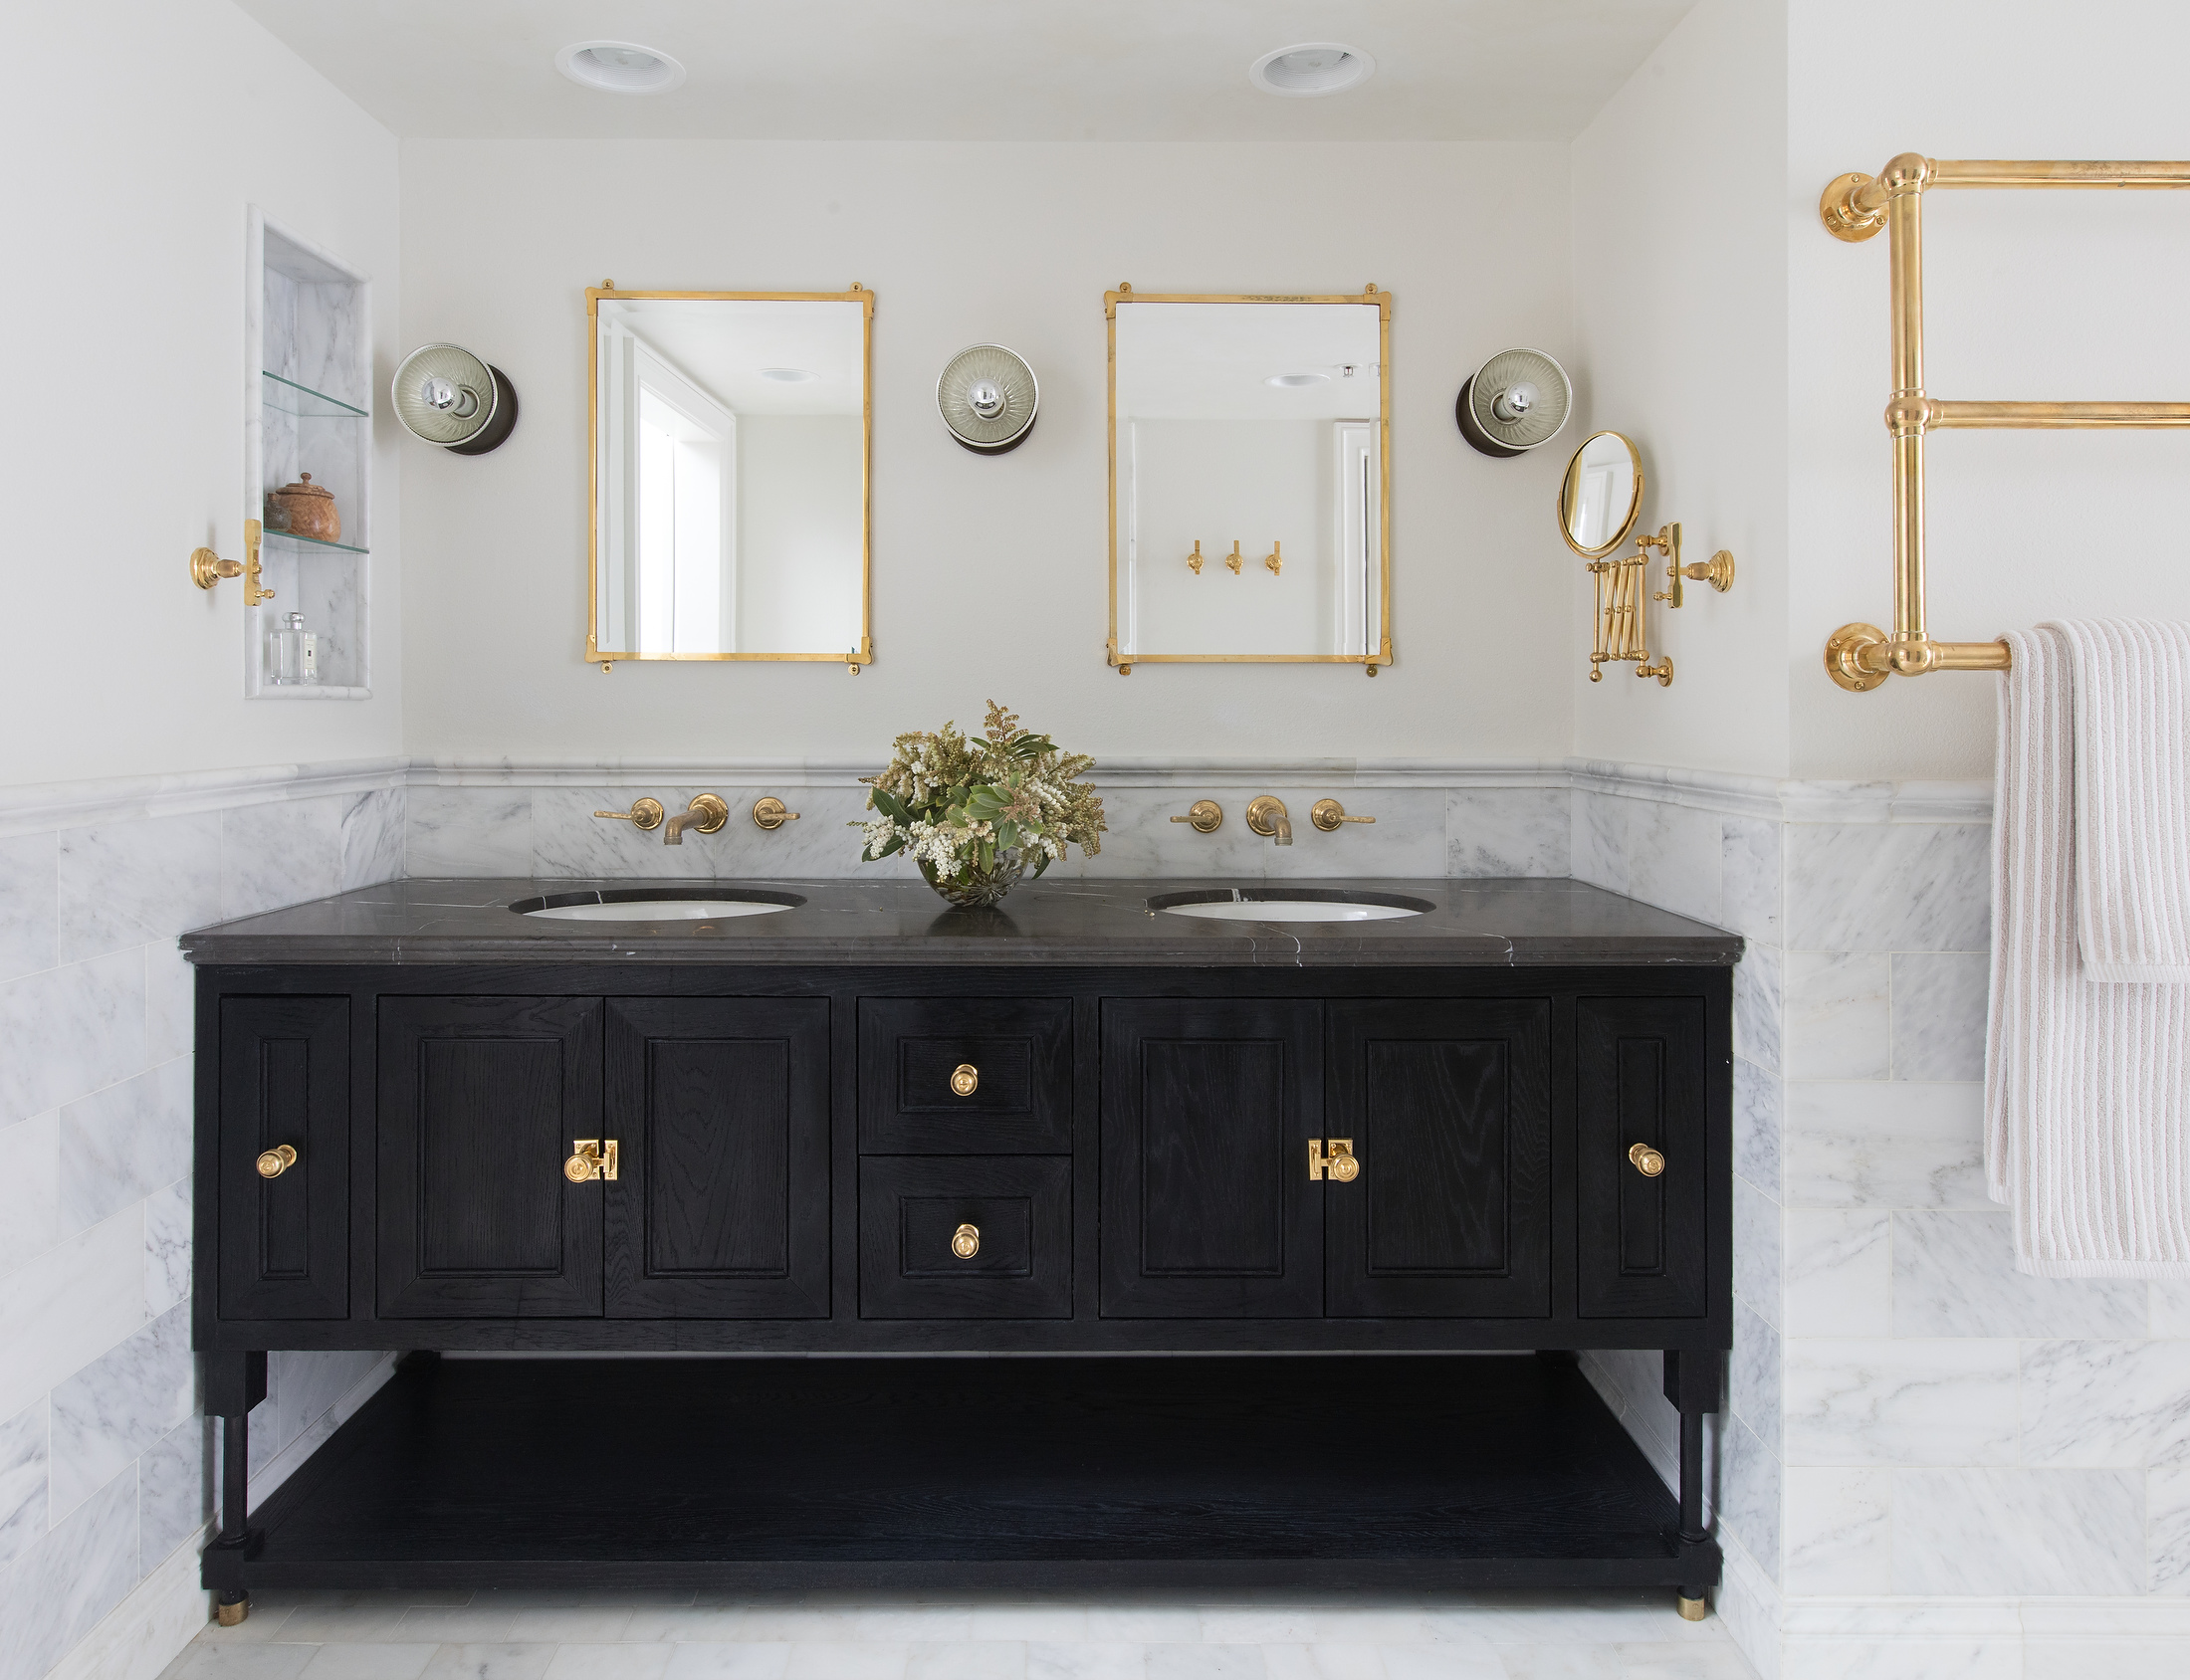 15 Beige Bathroom Paint Colors Interior Designers Swear By - By Megan Beauchamp| March 28, 2019It's official: Beige is back. While we'll never tire of bright white, let's be honest, it's not exactly an original option. Don't get us wrong, the neutral hue is timeless (and we'd certainly never suggest abandoning it altogether), but it's become a rather safe and, dare we say, boring choice, particularly for a bathroom. For the sake of variety, we're making the case for extending your gaze slightly beyond white swatches with names like mascarpone, cloud cover, and sea pearl, toward warm beige tones instead.In an effort to convince you to give the trending hue a try, we asked top interior designers to share the beige bathroom paint colors they swear by. After all, who better to speak to about the rising color than the pros? From a subtle beige (for those who don't want to veer too far from white) to an earthy neutral that's warm and inviting, these are the shades interior designers have deemed far from dated (and far from boring). Keep scrolling to shop 15 expert-approved shades.